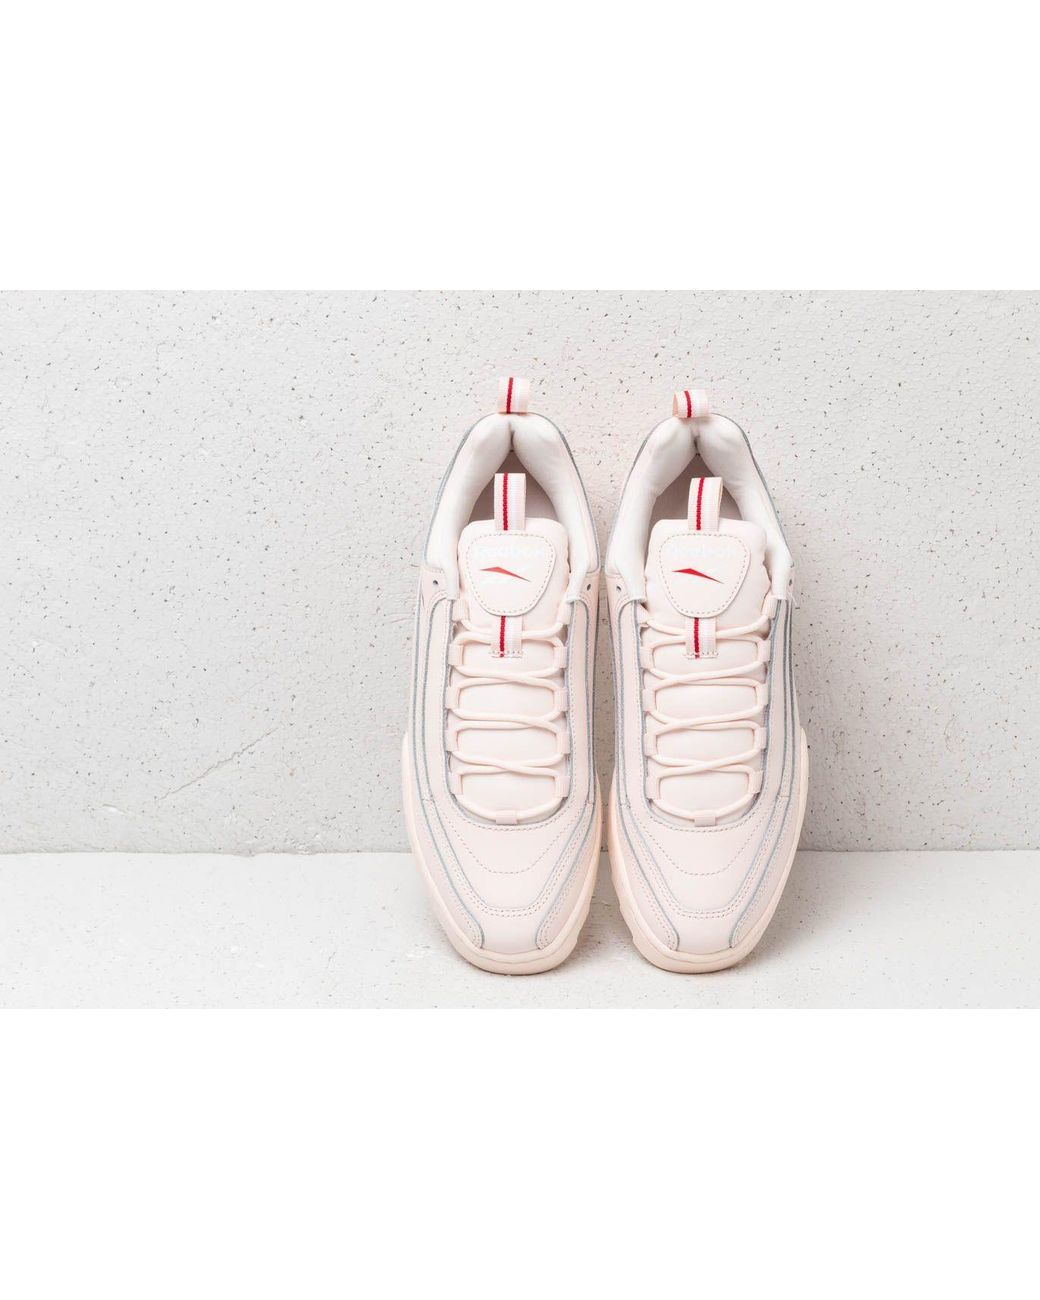 f5927692348 Reebok Reebok Rivyx Ripple Pale Pink/ White/ Red in Pink - Lyst